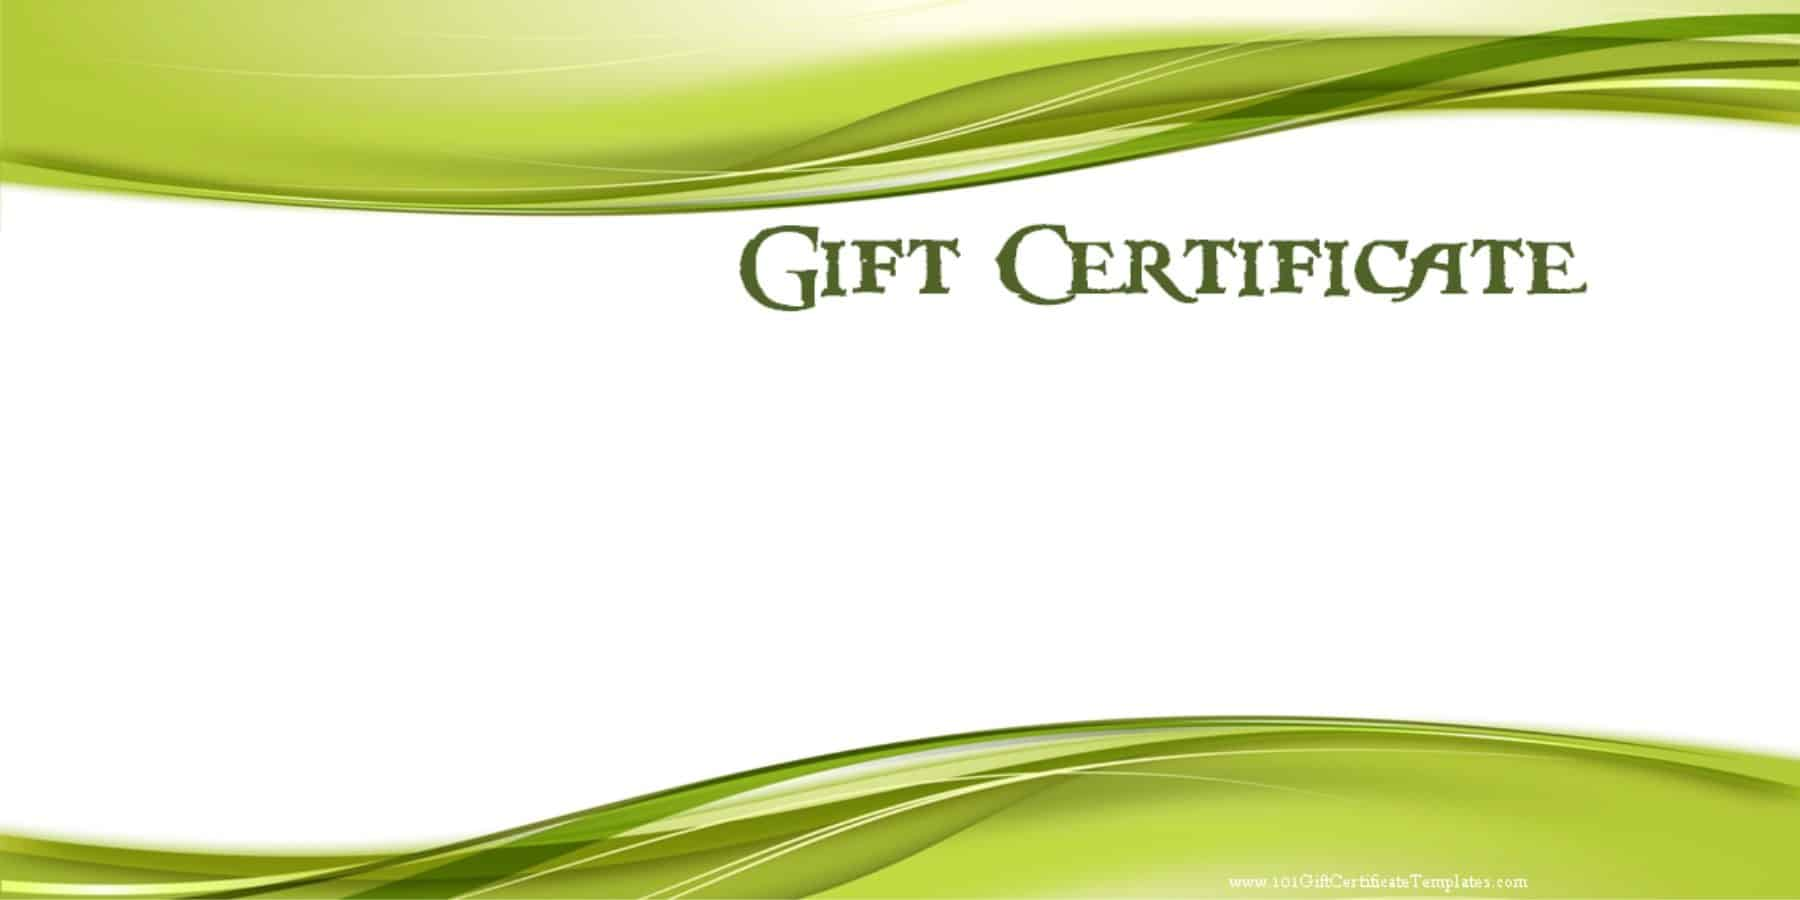 Printable gift certificate templates blank gift certificate which can be customized 1betcityfo Image collections